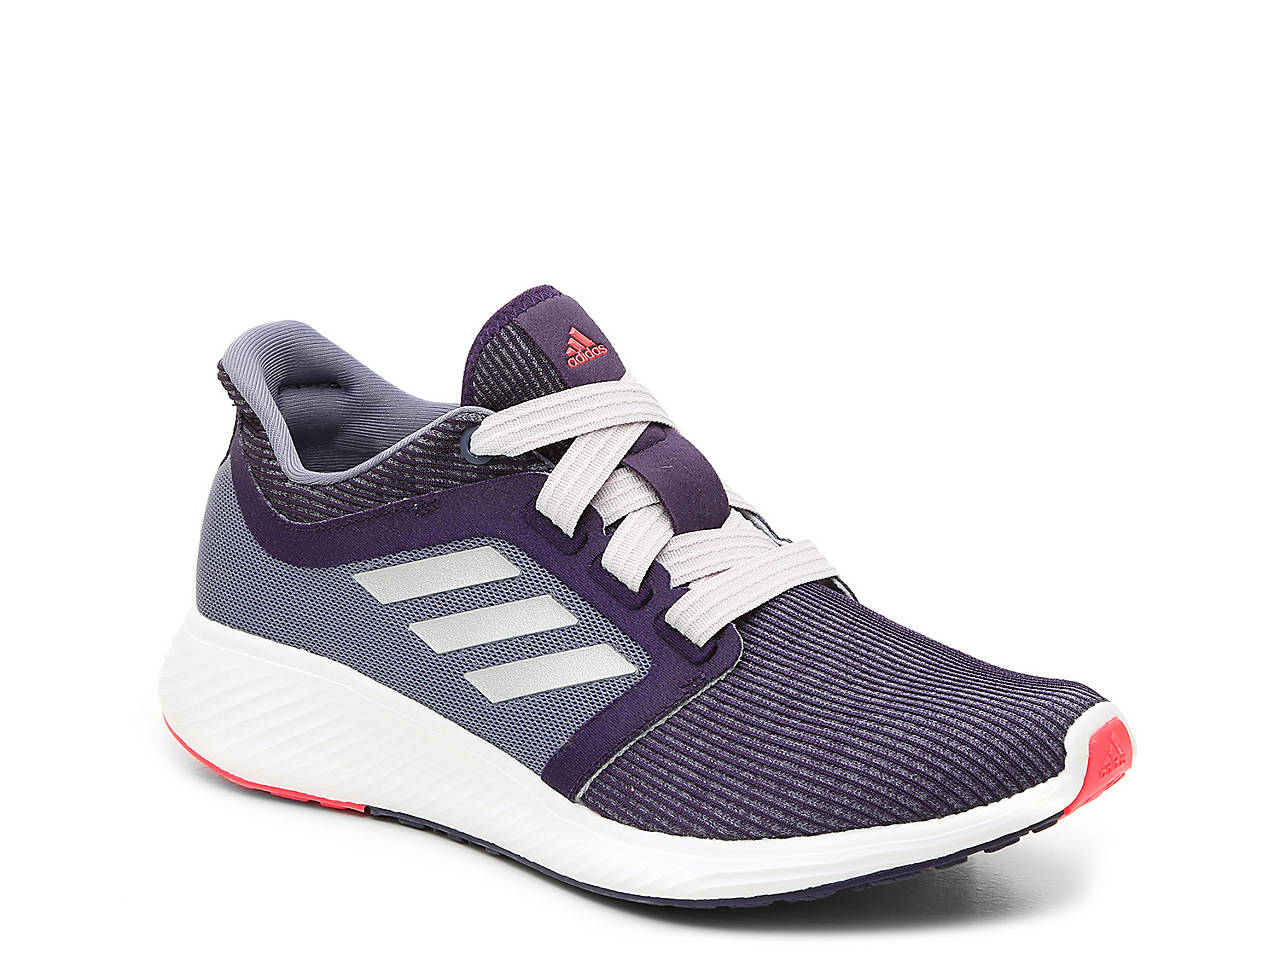 a0a3405bf adidas Edge Lux 3 Lightweight Running Shoe - Women s Women s Shoes